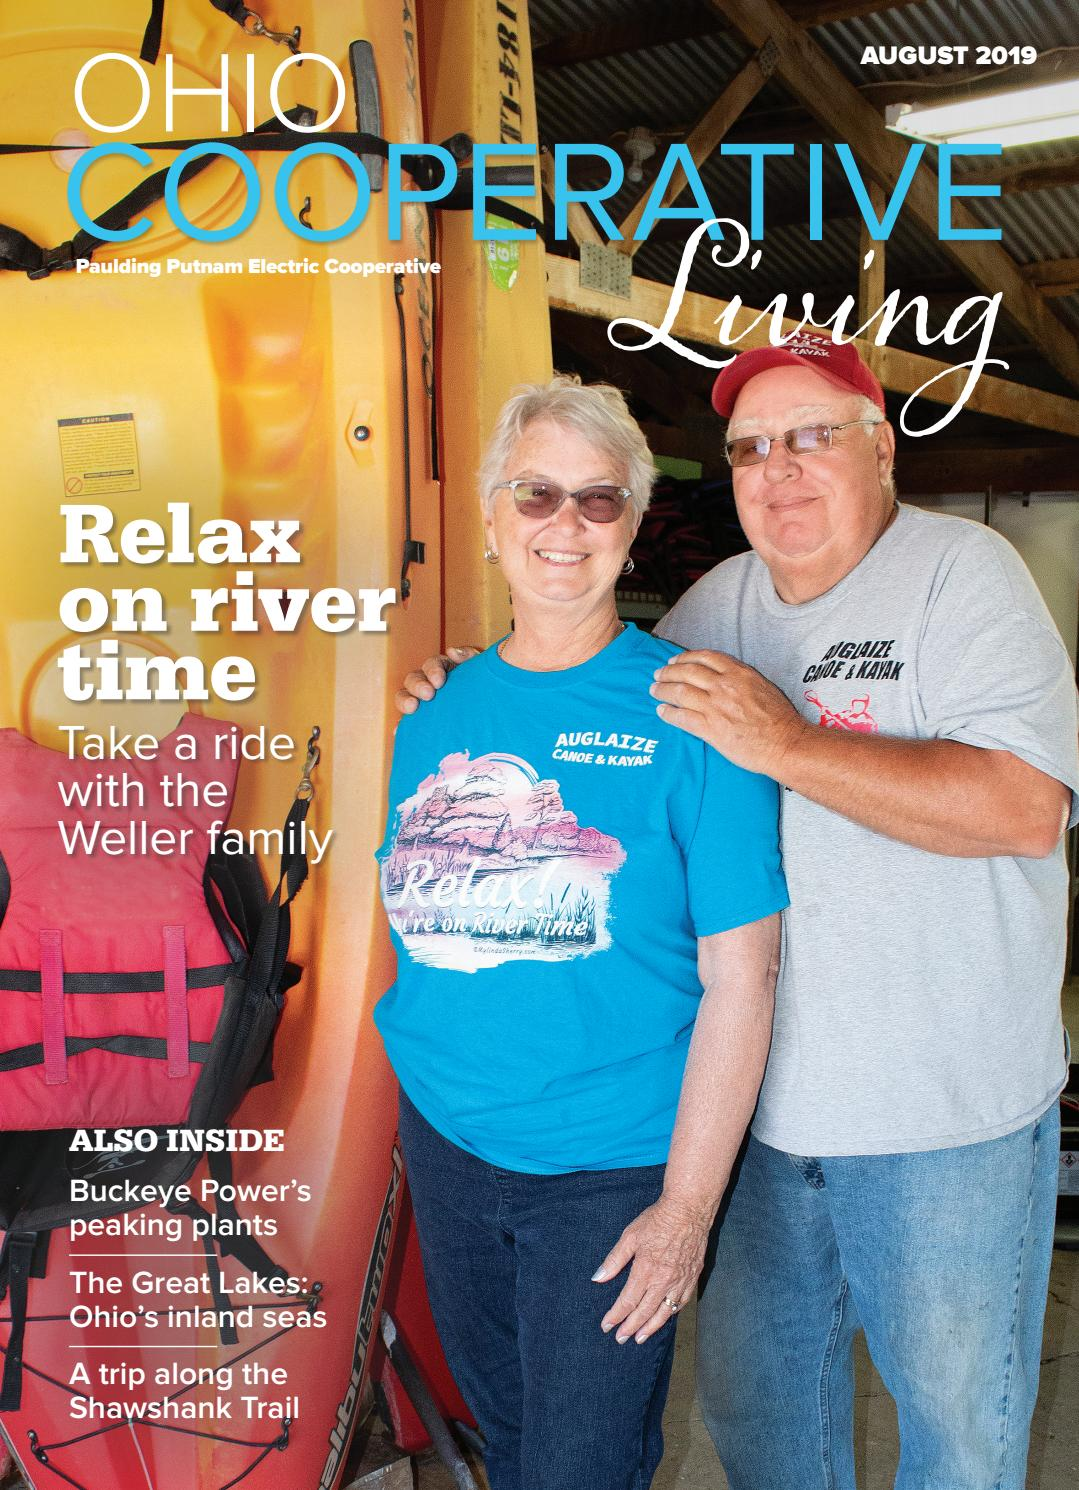 Ohio Cooperative Living August 2019 Paulding Putnam By Ohio Cooperative Living Issuu Join facebook to connect with terrie diaz and others you may know. paulding putnam by ohio cooperative